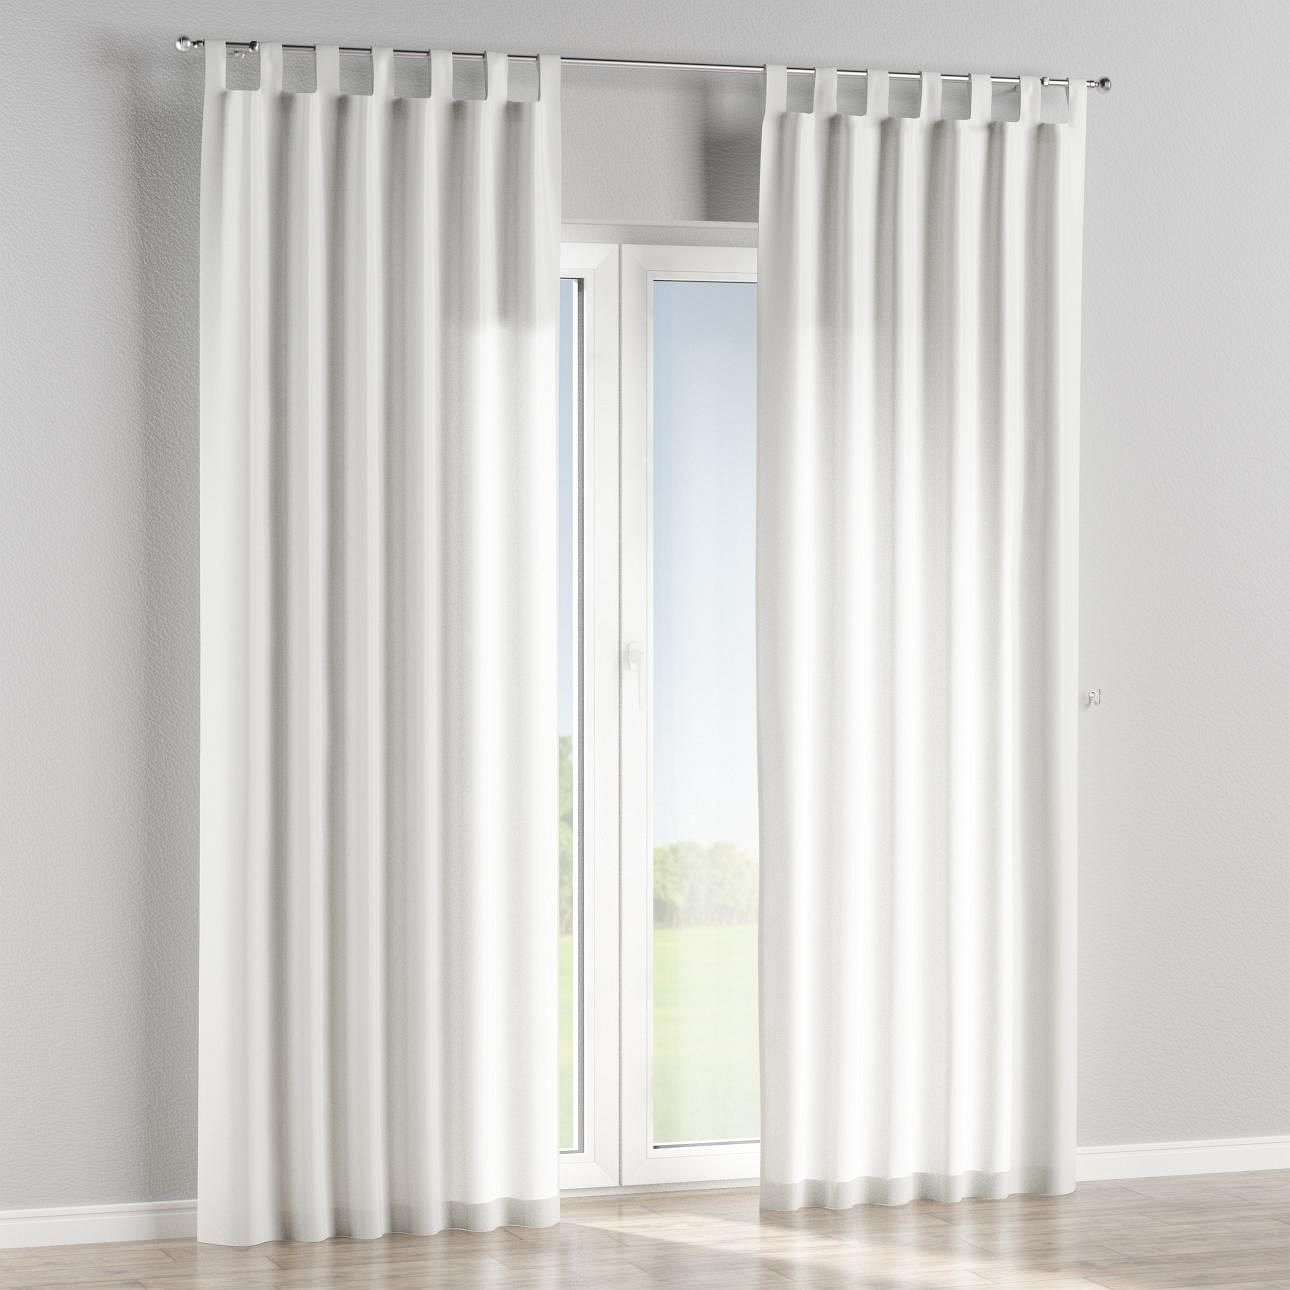 Tab top curtains in collection Rustica, fabric: 138-23